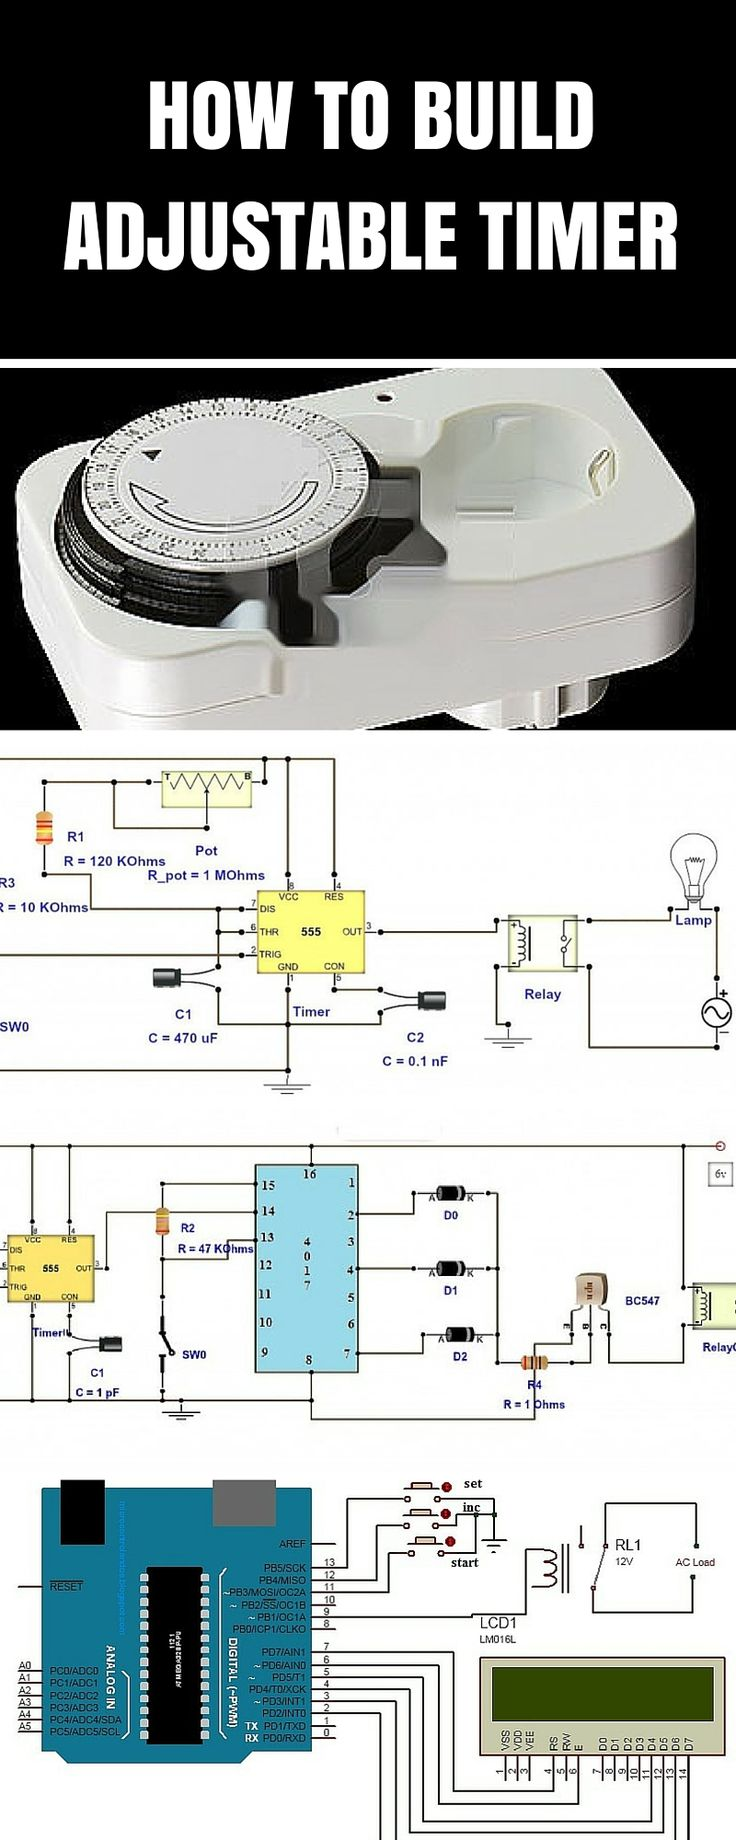 596 Best Electronics Images On Pinterest Electrical Engineering Electronic Components Blog Cd4060 Timer Circuit 1 Minute To 2 Hours Adjustable Diagram With Relay Output